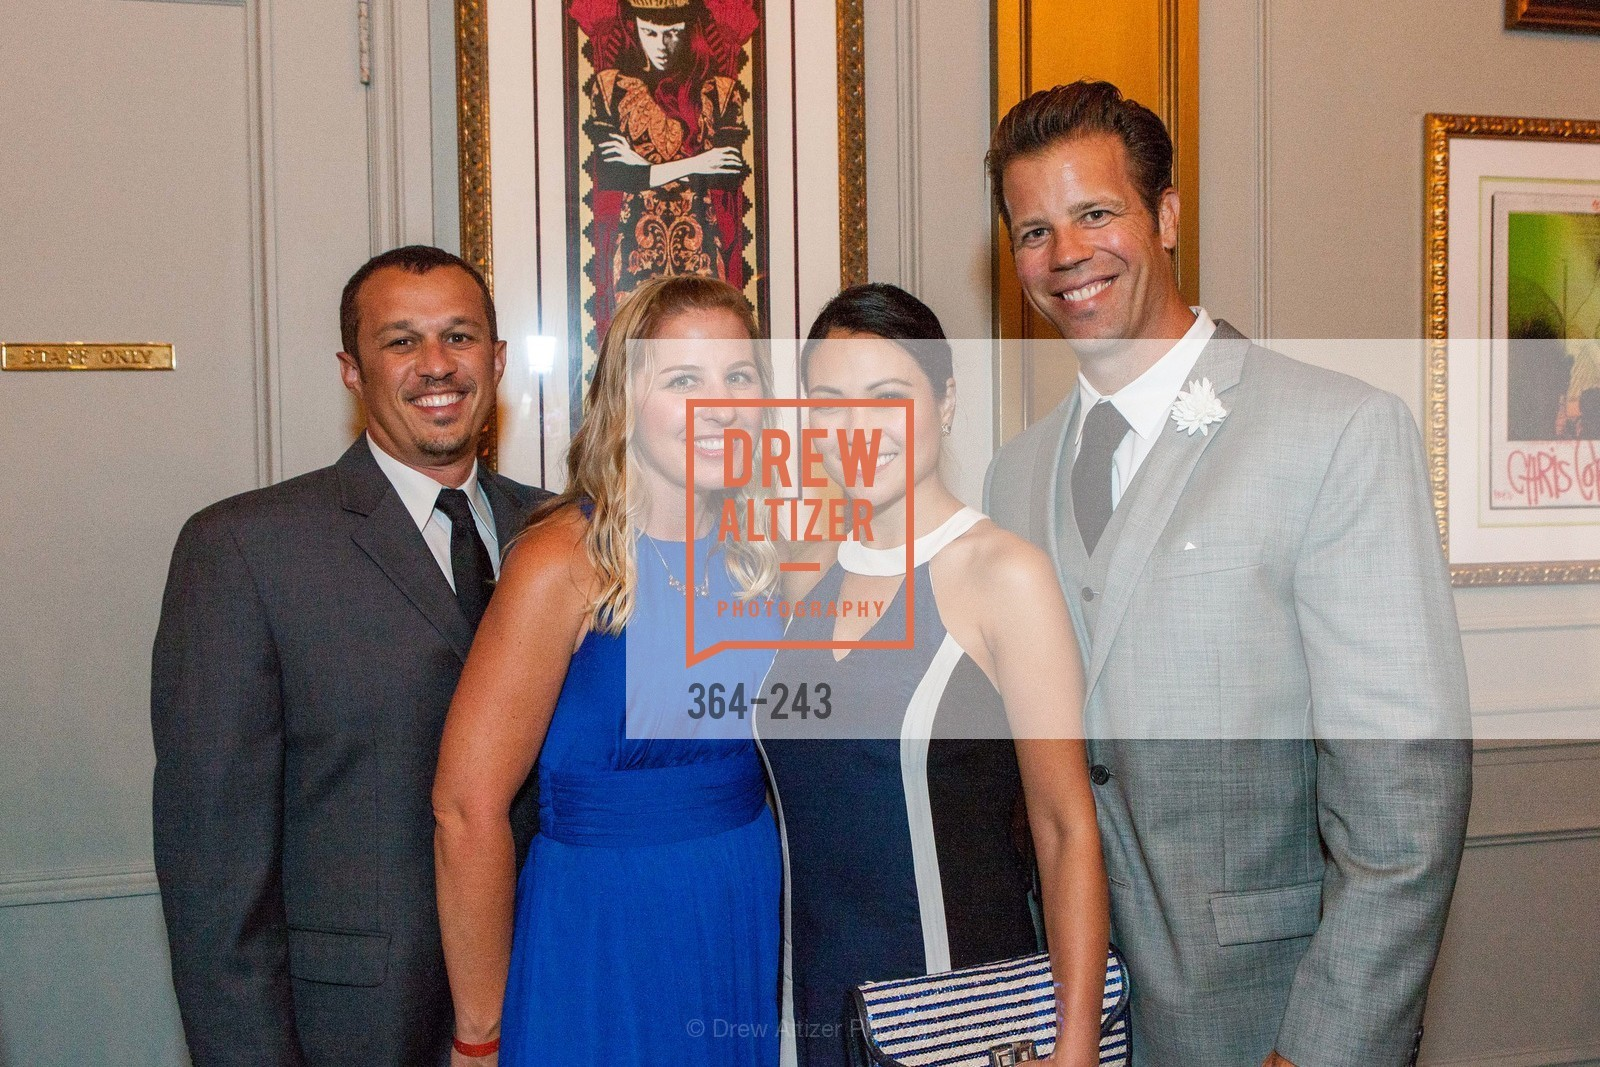 Eli Sills, Amanda Sills, Christine Lopez, Mark DeWeese, 6TH ANNUAL GLIDE LEGACY GALA, The Regency Ballroom. 1300 Van Ness Ave, August 22nd, 2015,Drew Altizer, Drew Altizer Photography, full-service agency, private events, San Francisco photographer, photographer california